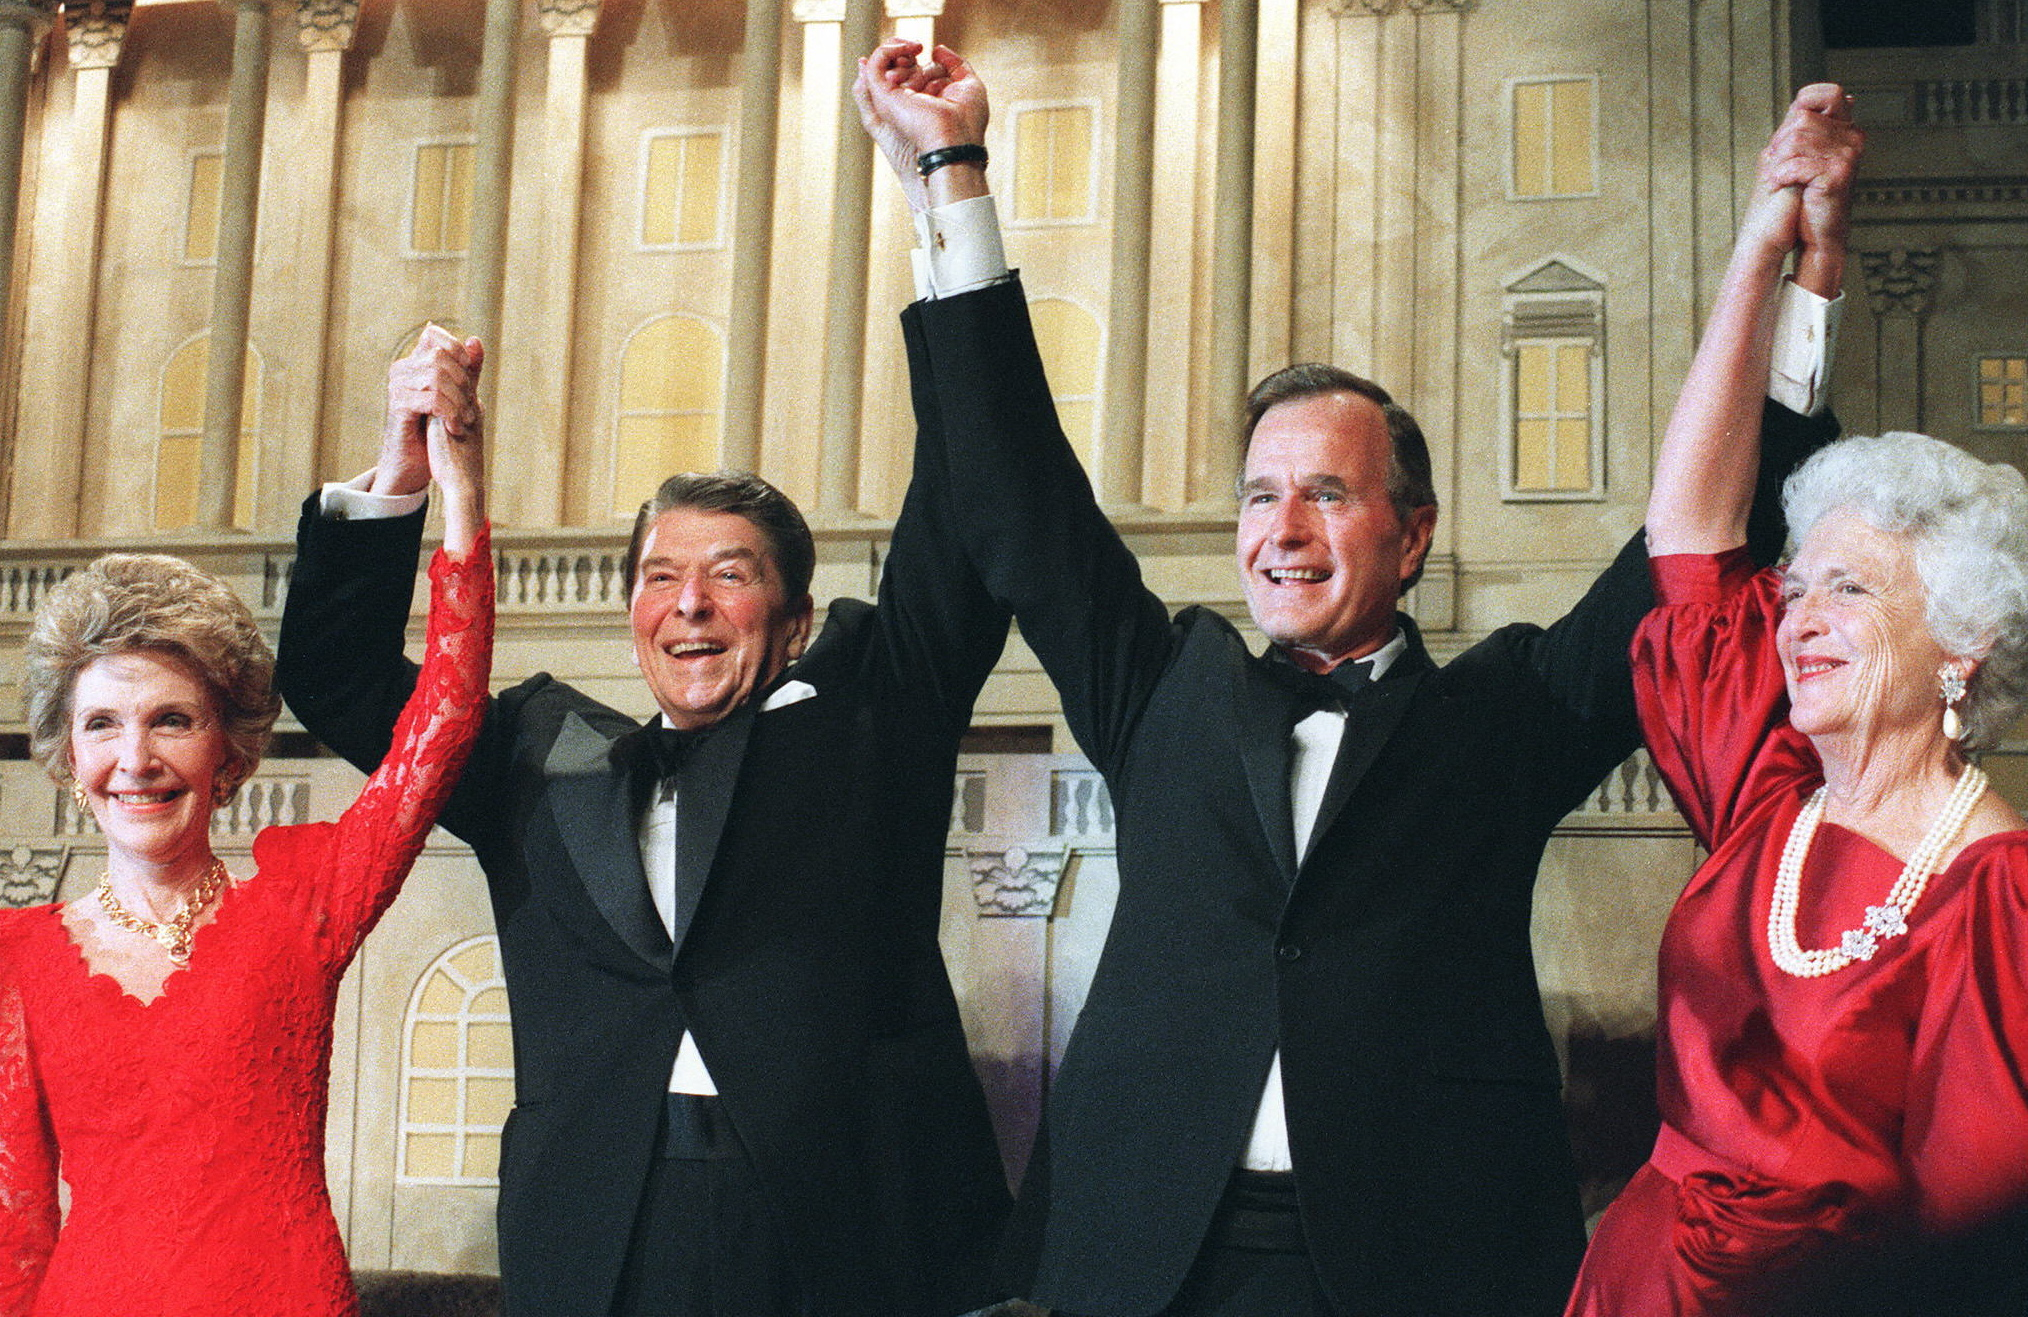 WASHINGTON, DC - NOVEMBER 5: US President Ronald Reagan (l) raises his arms in the air with presidential hopeful George Bush (2nd-r) after President Reagan announced endorsement for Bush as the next president of the United States in Washington DC, 05 November 1988. At left, First Lady Nancy Reagan, at right, Barbara Bush. (Photo credit should read MIKE SARGENT/AFP/Getty Images)